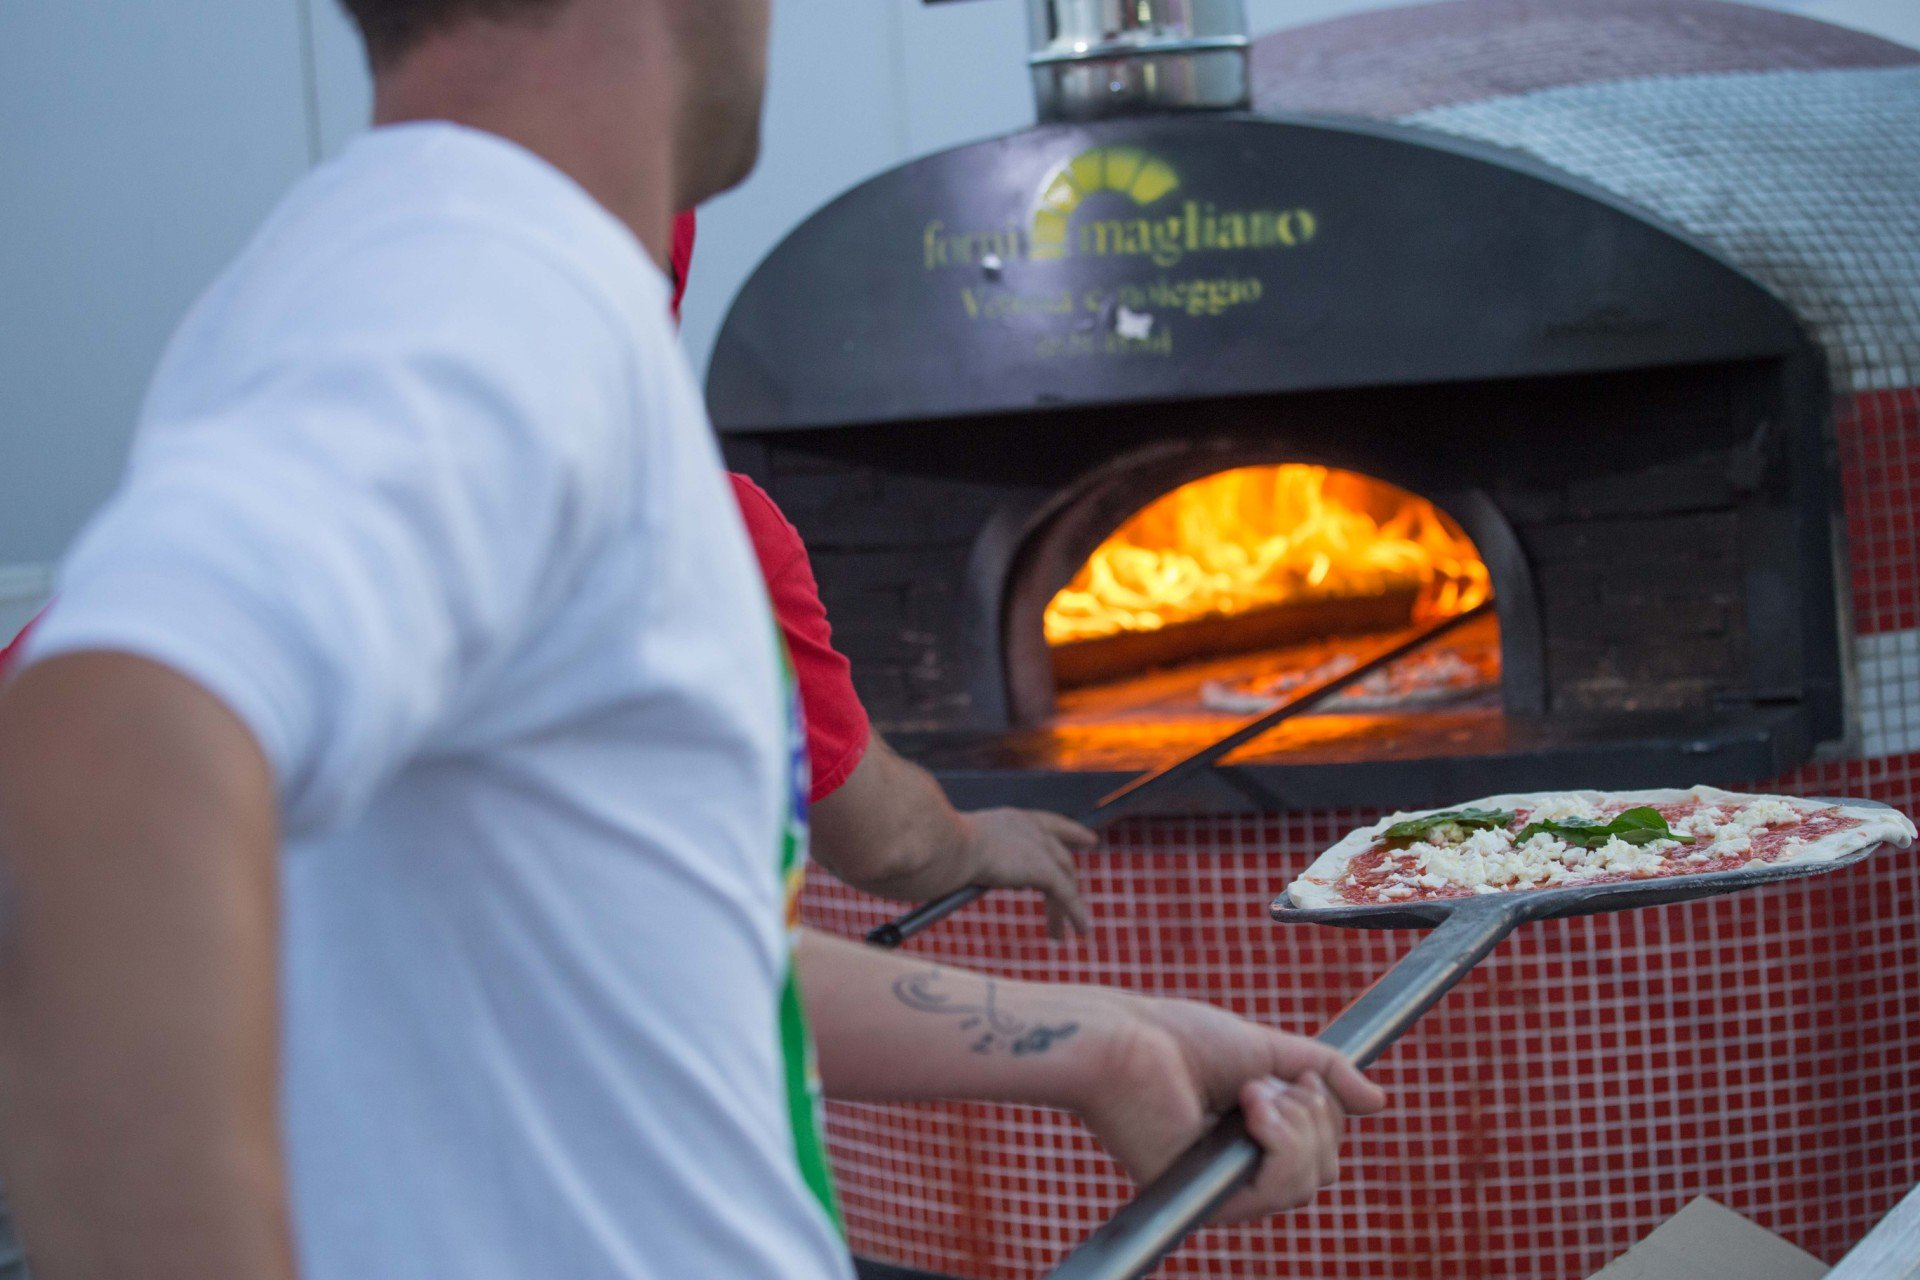 Napoli Pizza Village Festival in Naples and Pompeii - Best Season 2019